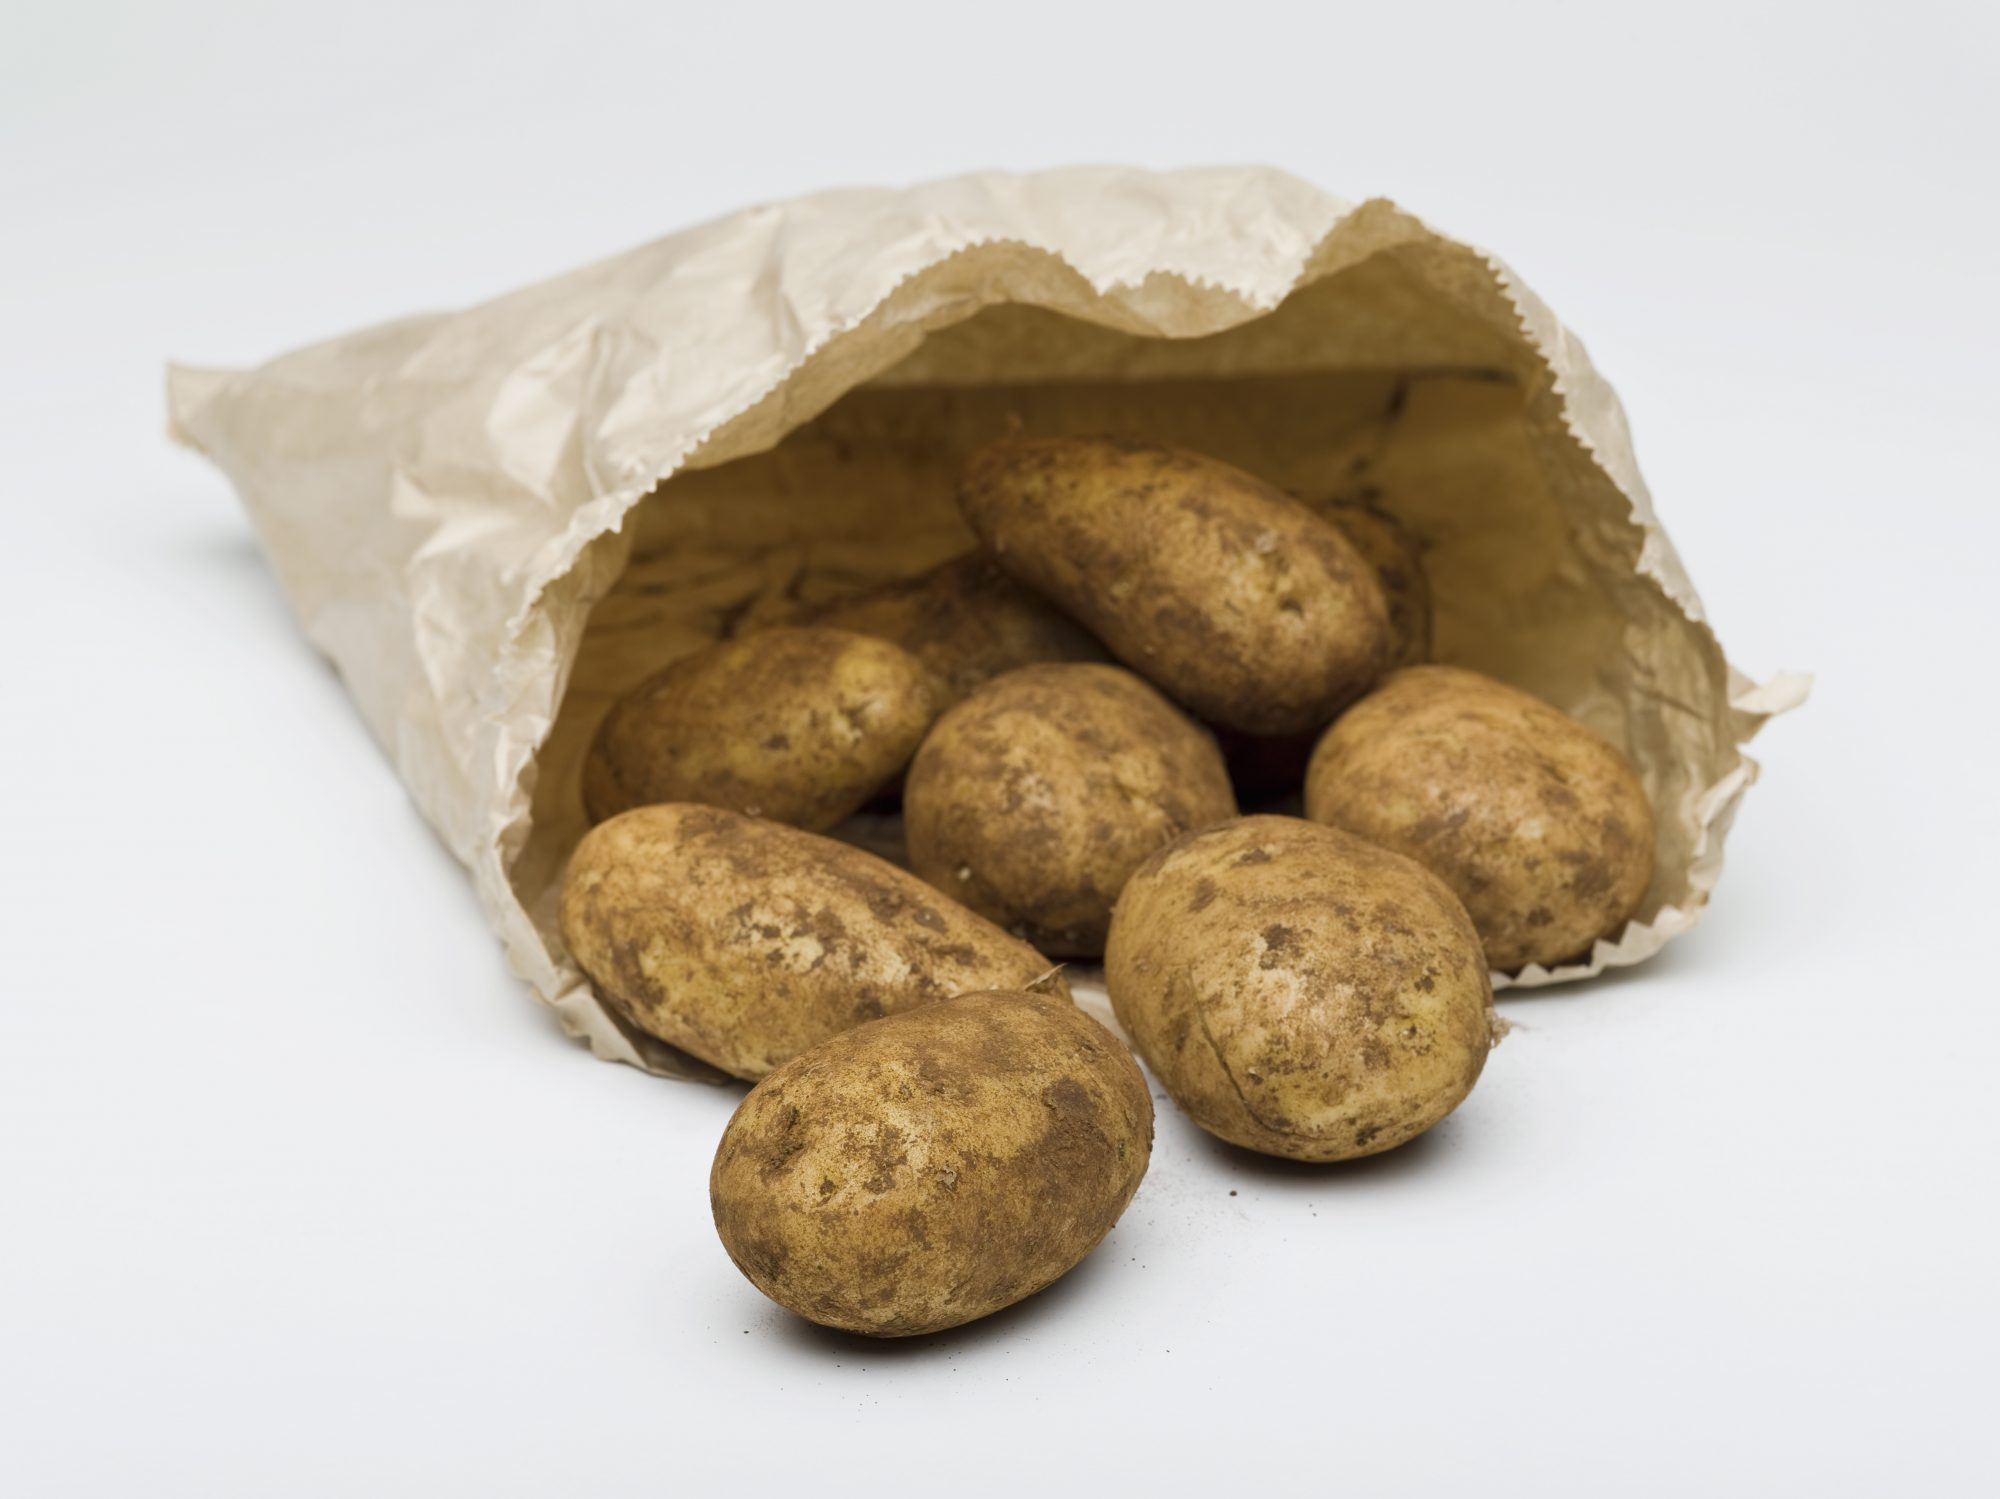 Potatoes in a paper bag Getty 4/7/20